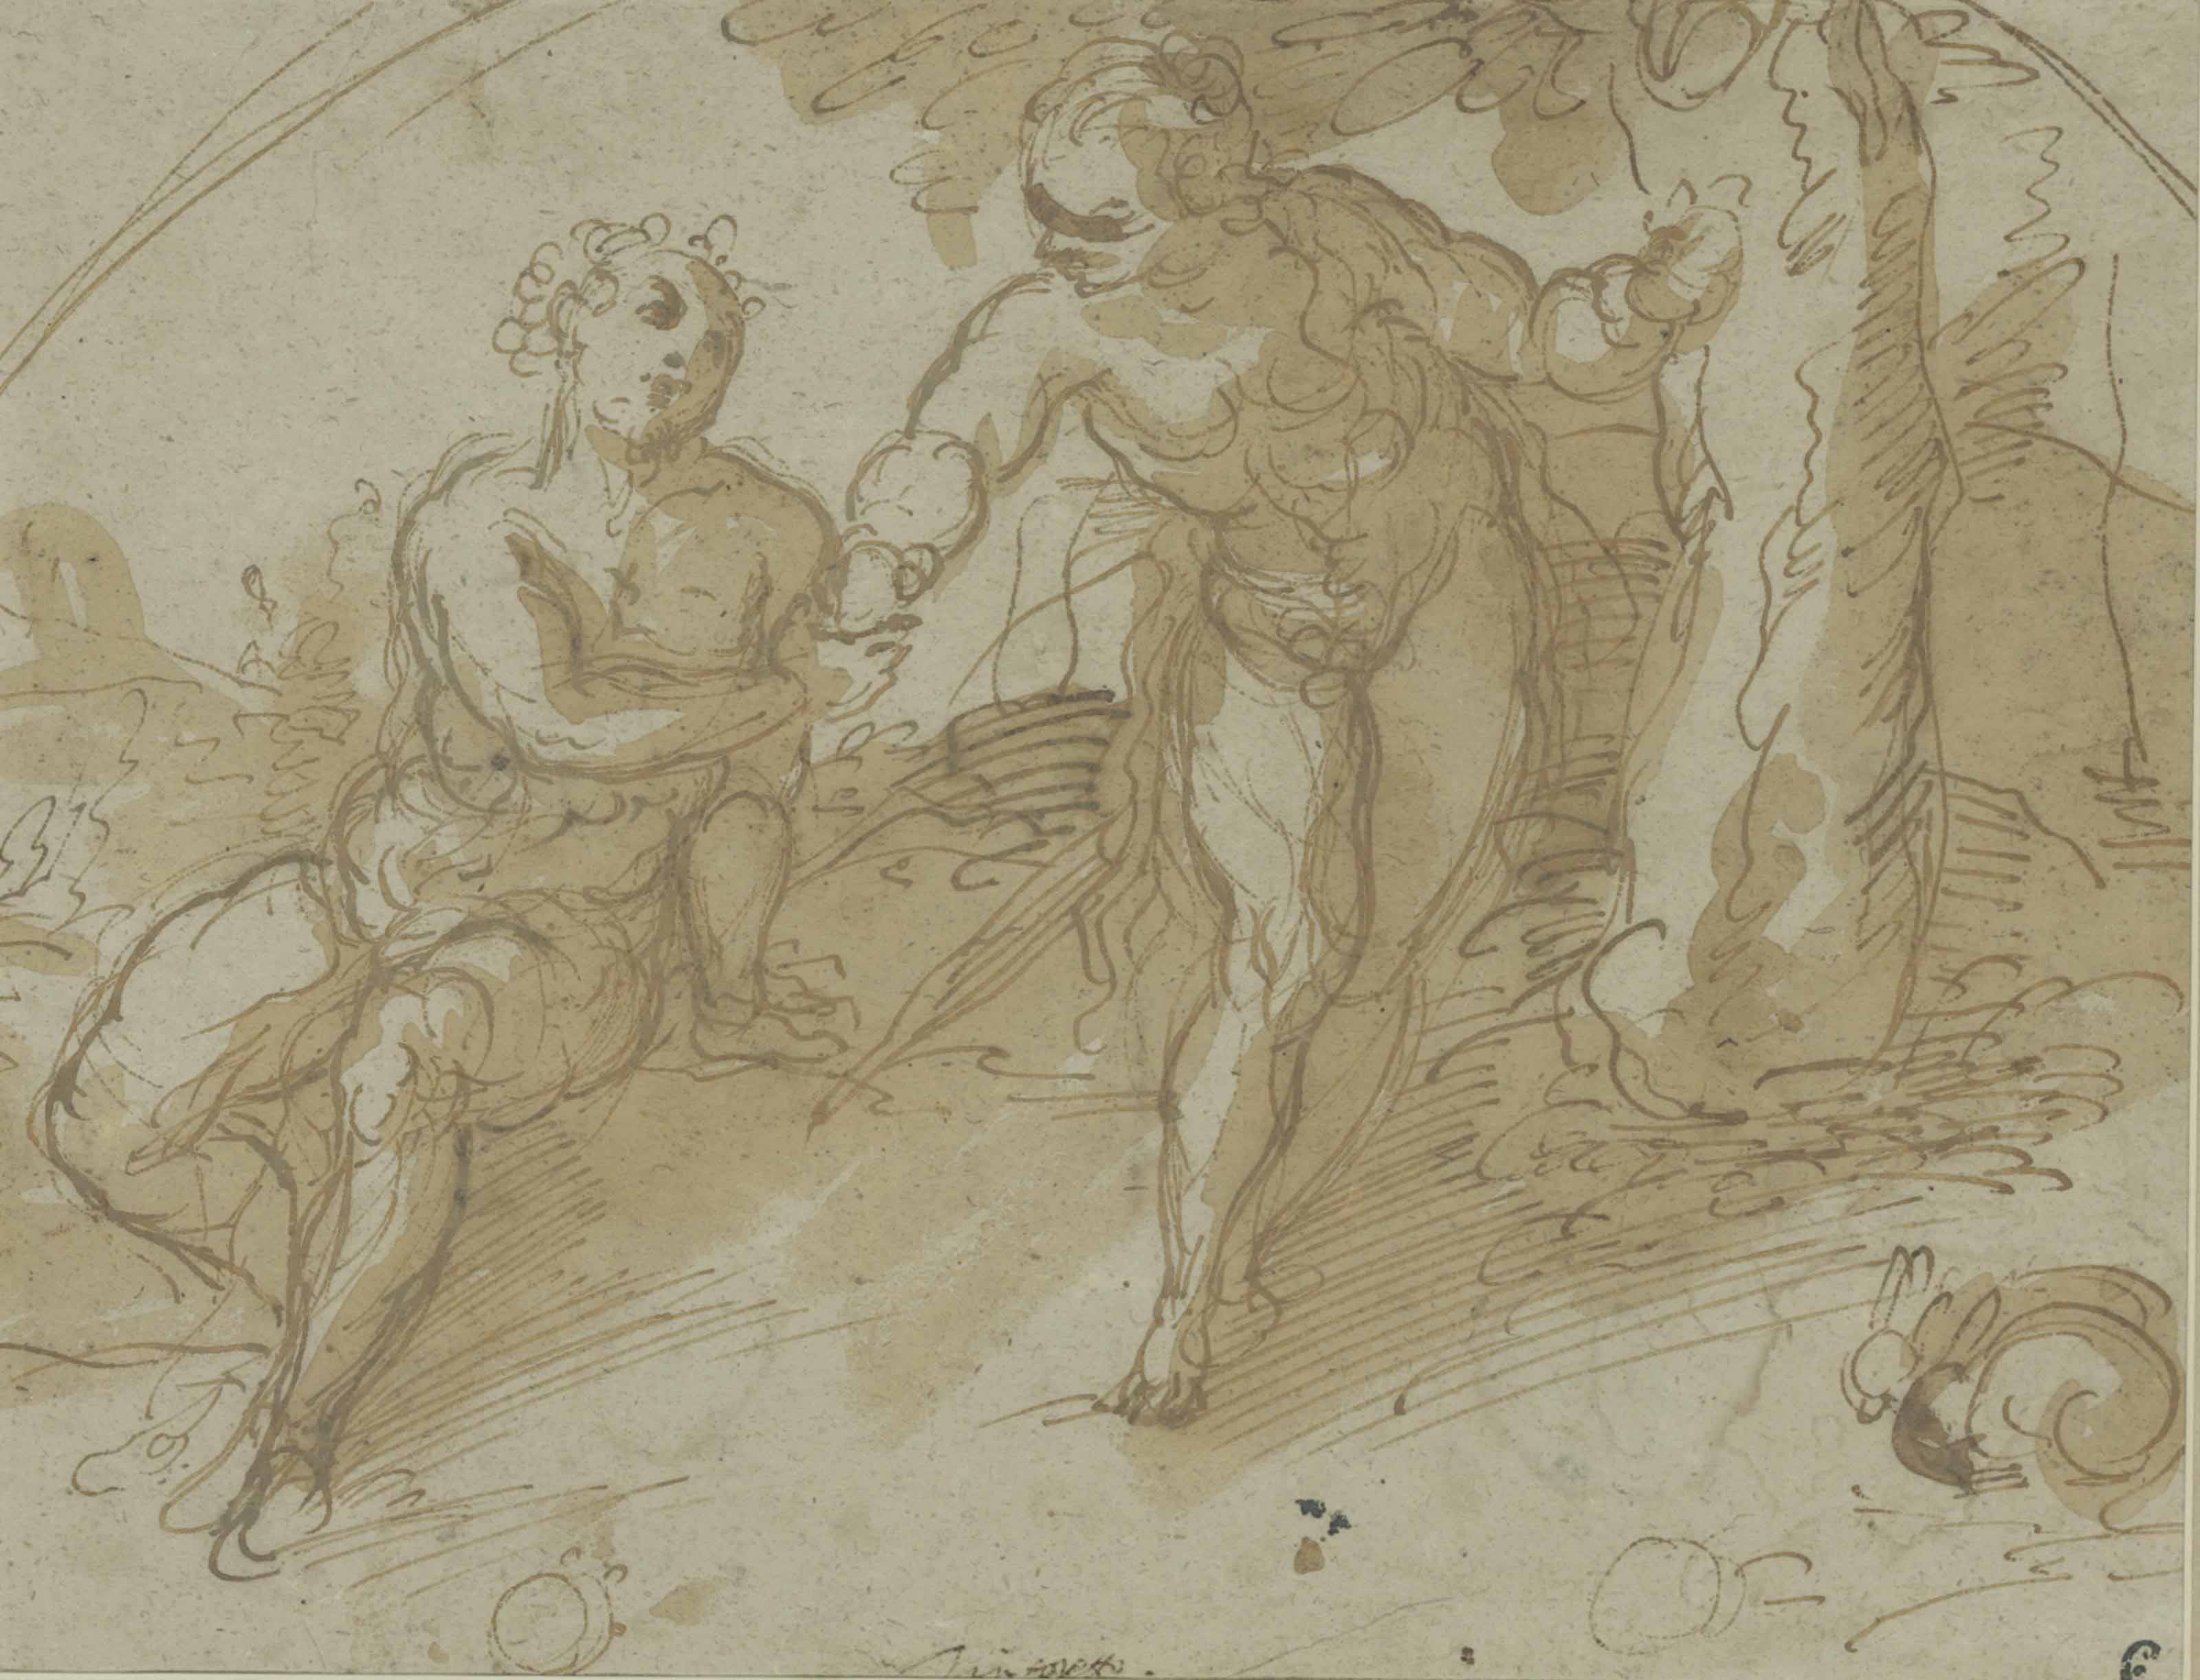 Adam and Eve (recto); Figure studies (verso)